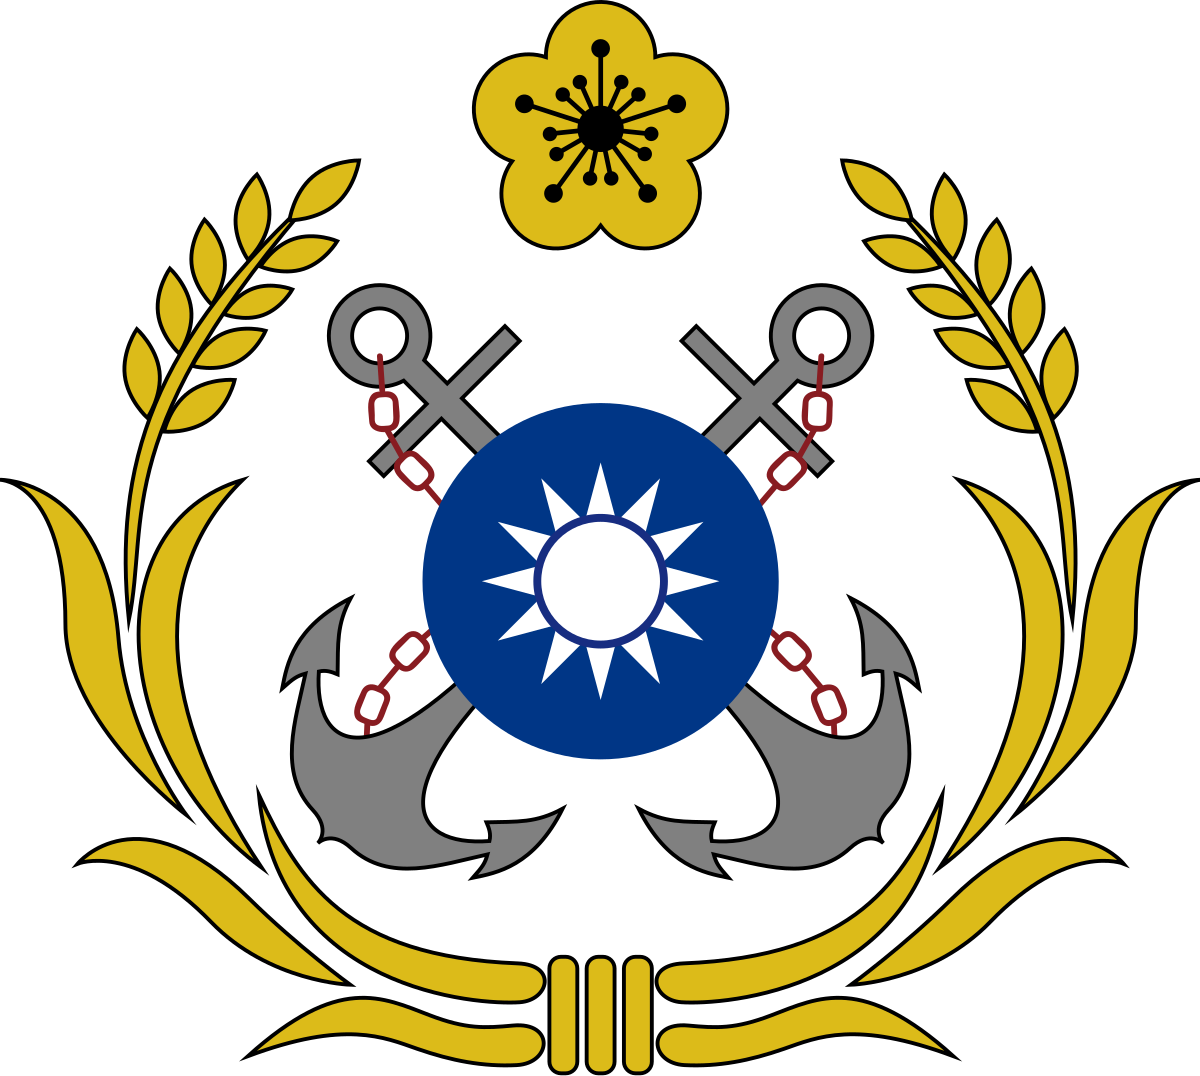 Republic of china wikipedia. Navy clipart destroyer navy